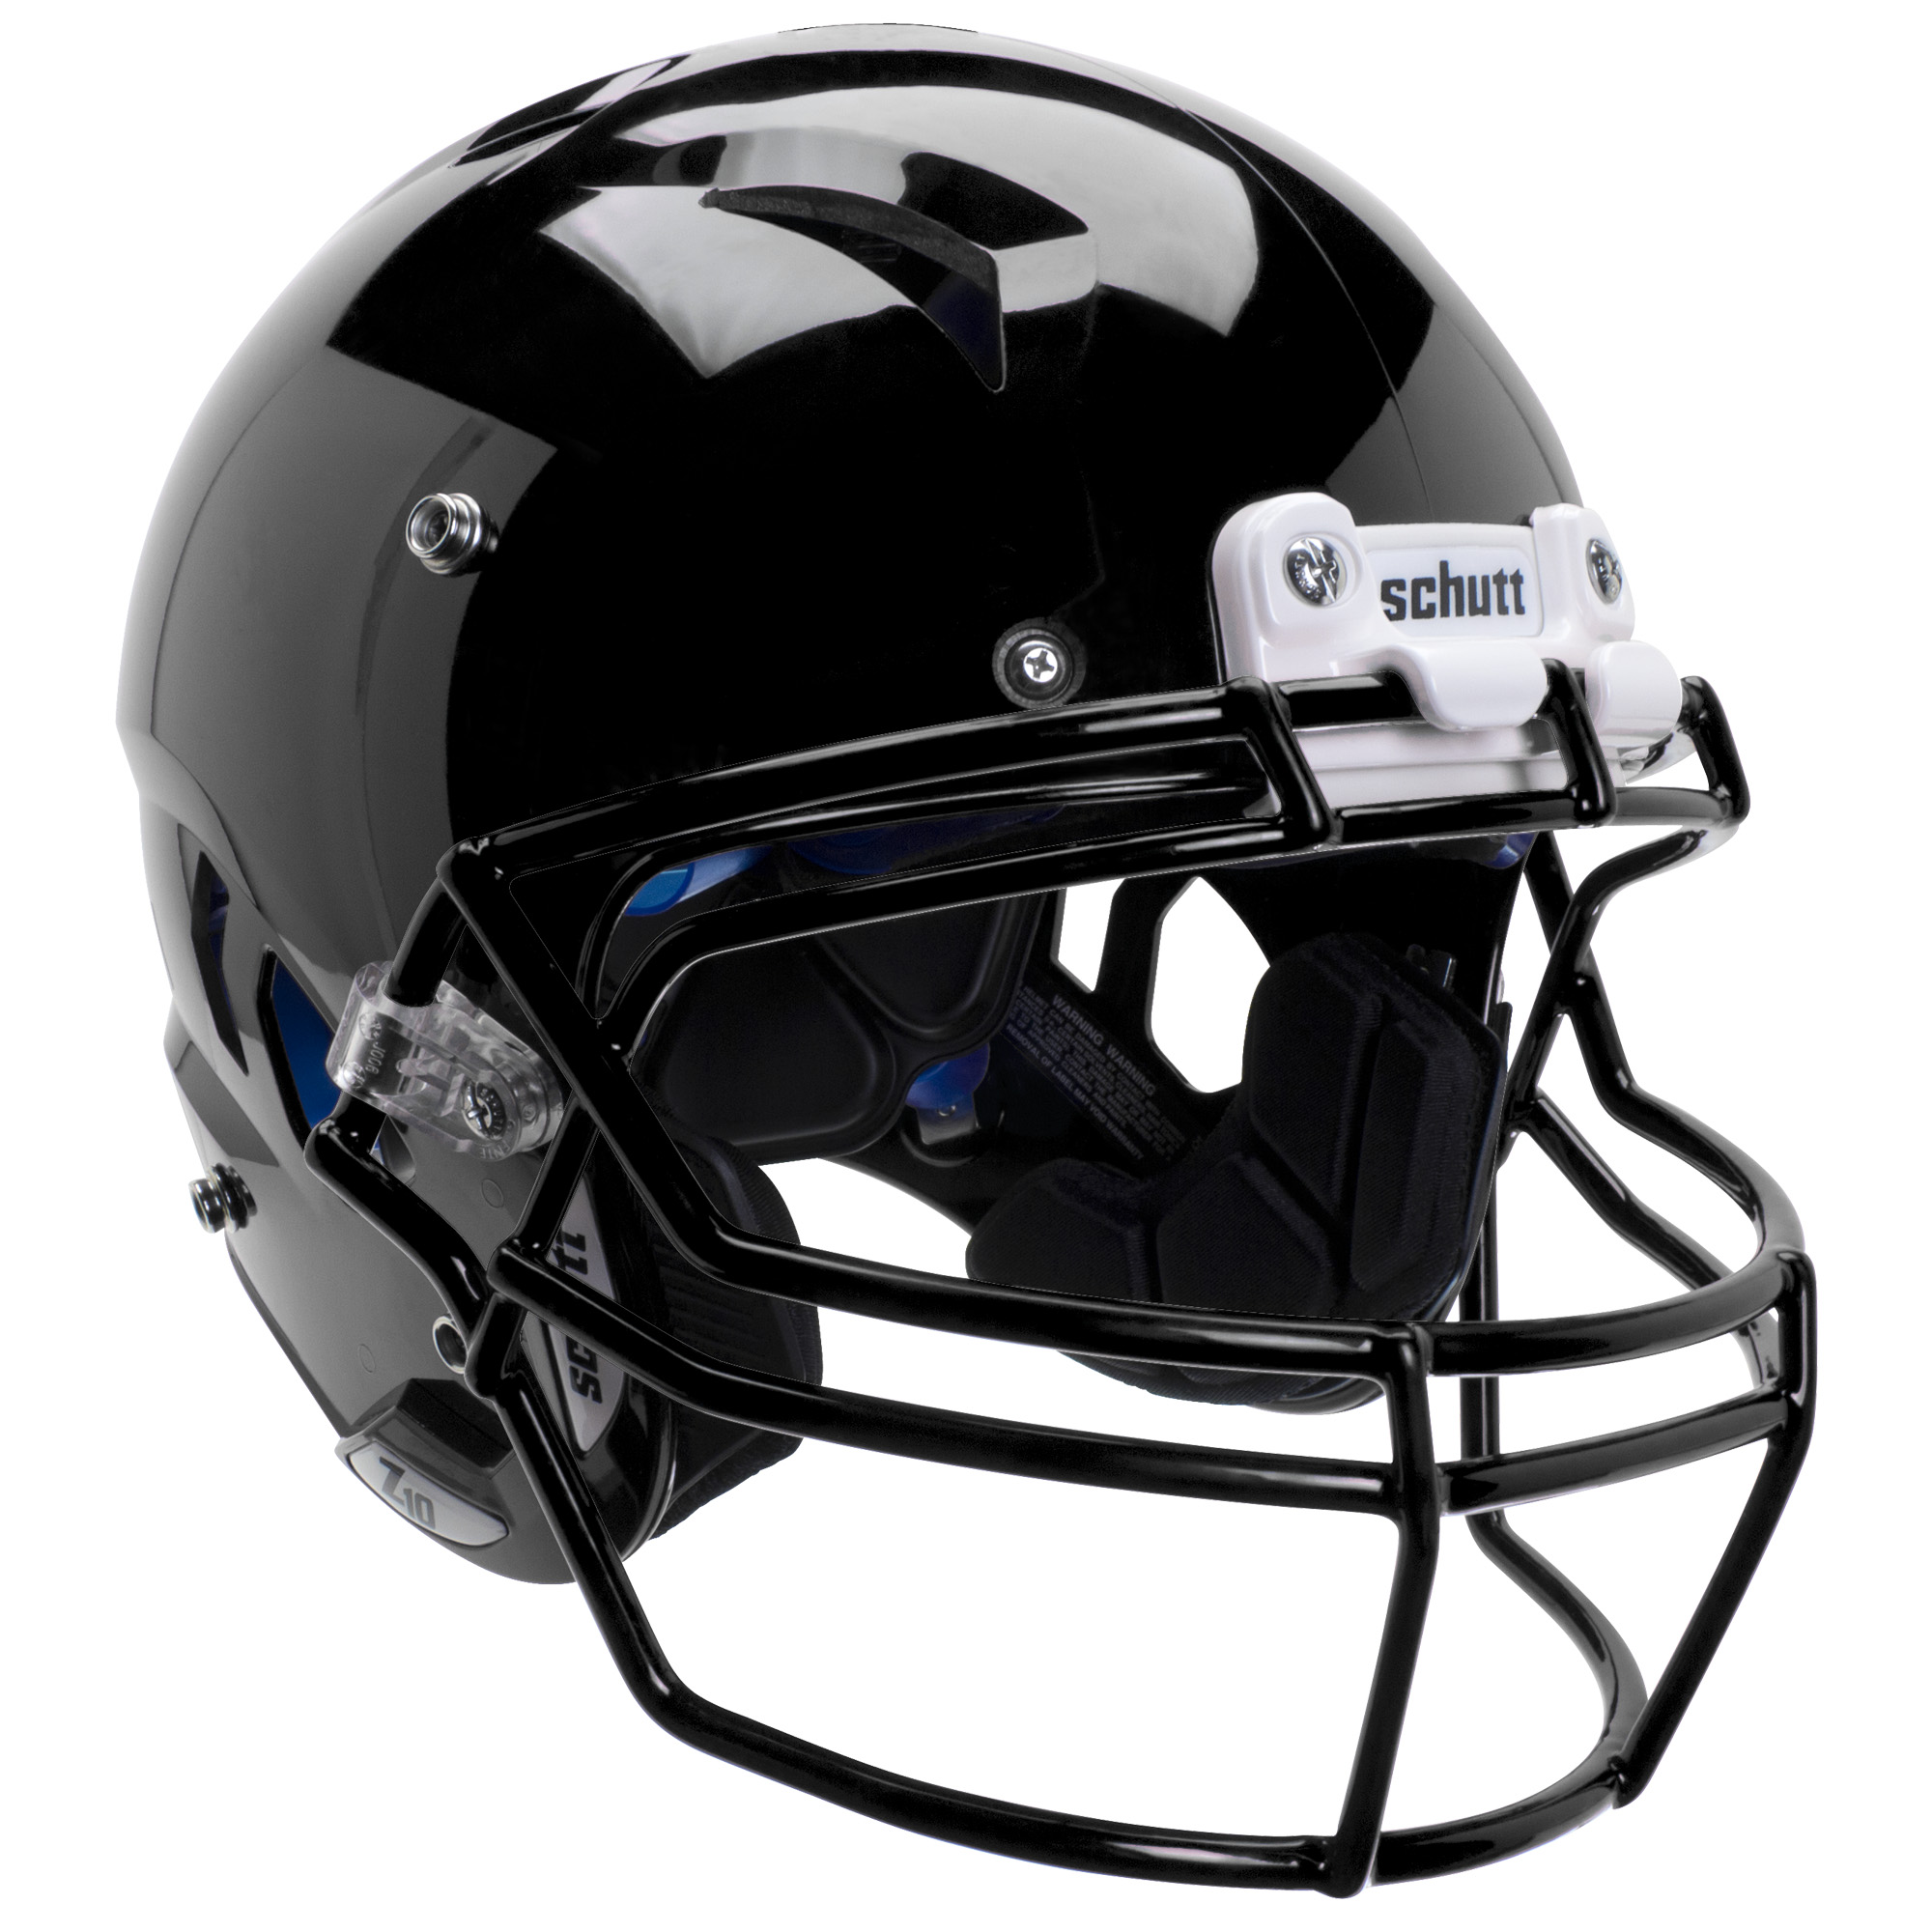 Schutt Youth Vengeance Z10 Football Helmet with TROPO Facemask